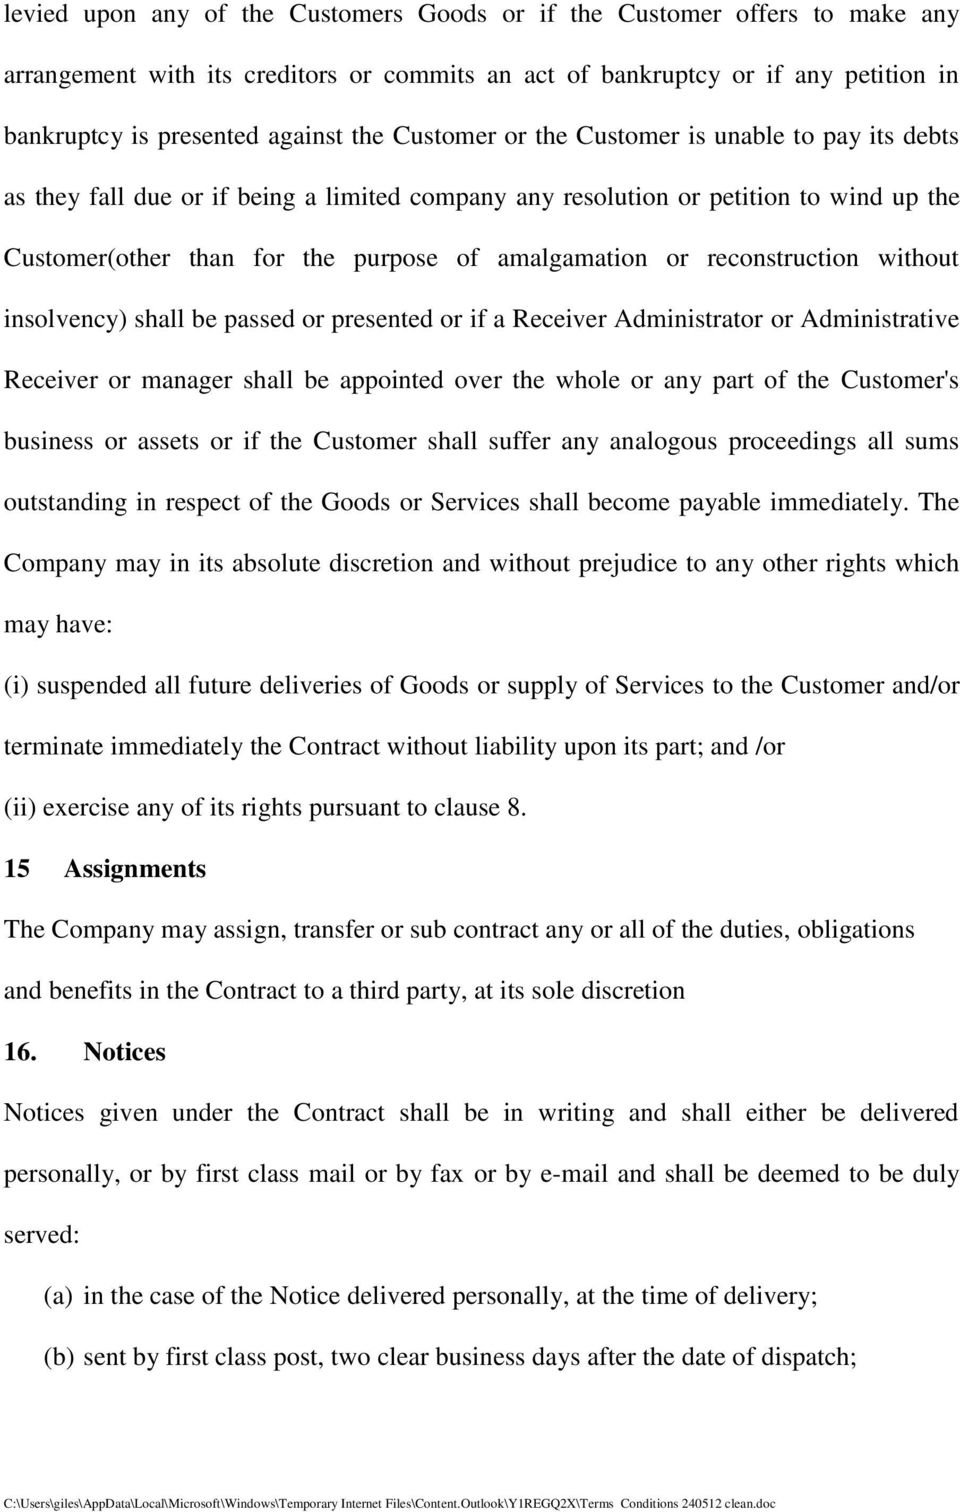 reconstruction without insolvency) shall be passed or presented or if a Receiver Administrator or Administrative Receiver or manager shall be appointed over the whole or any part of the Customer's